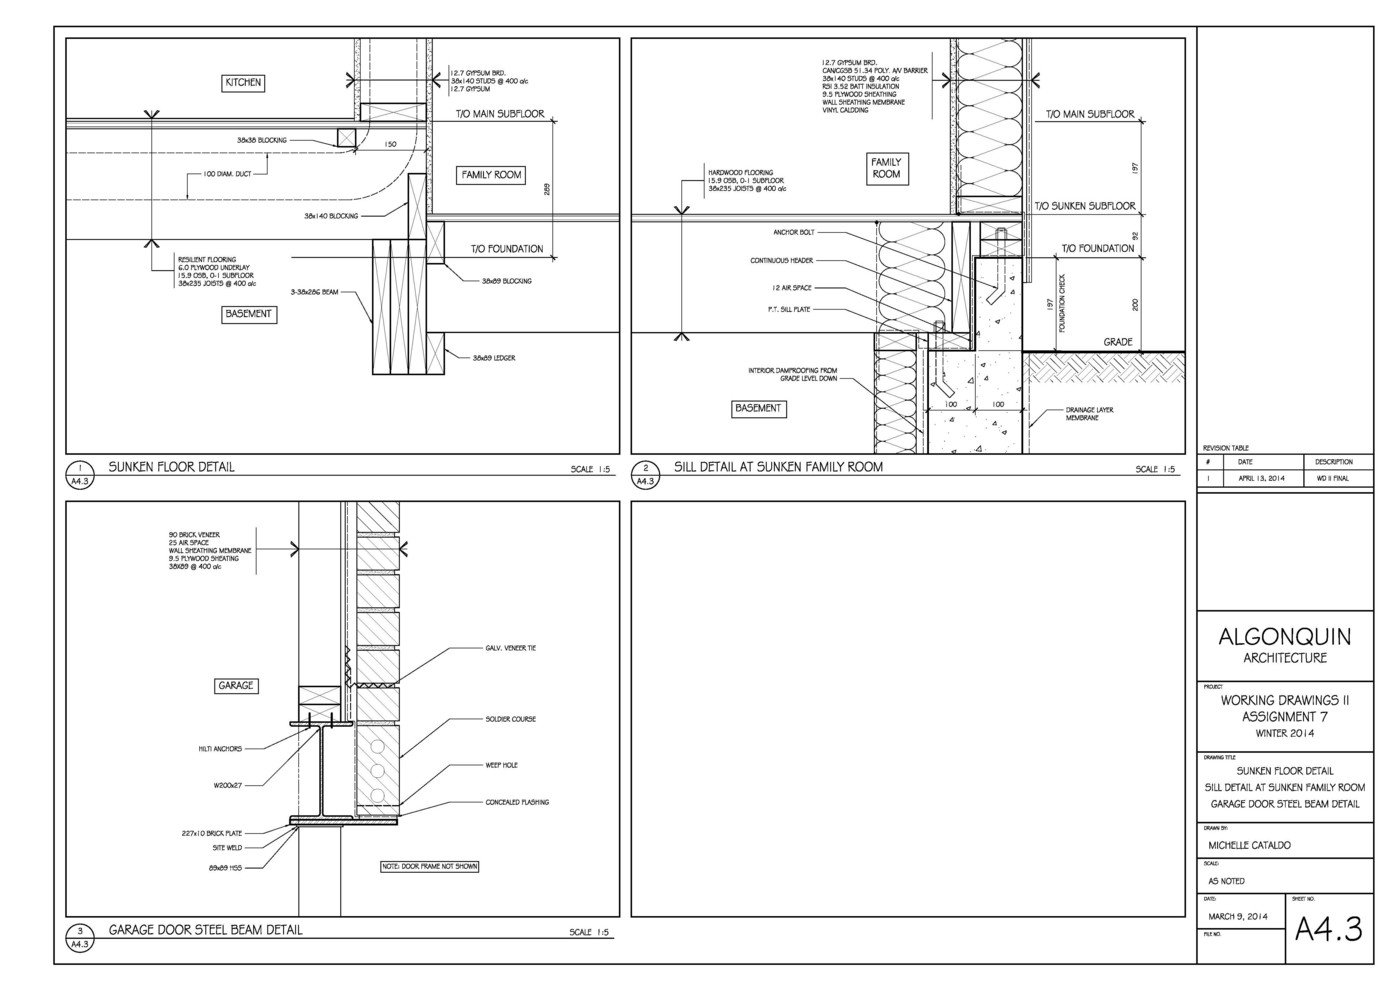 Working Drawings - AutoCAD (1) by Michelle Cataldo at